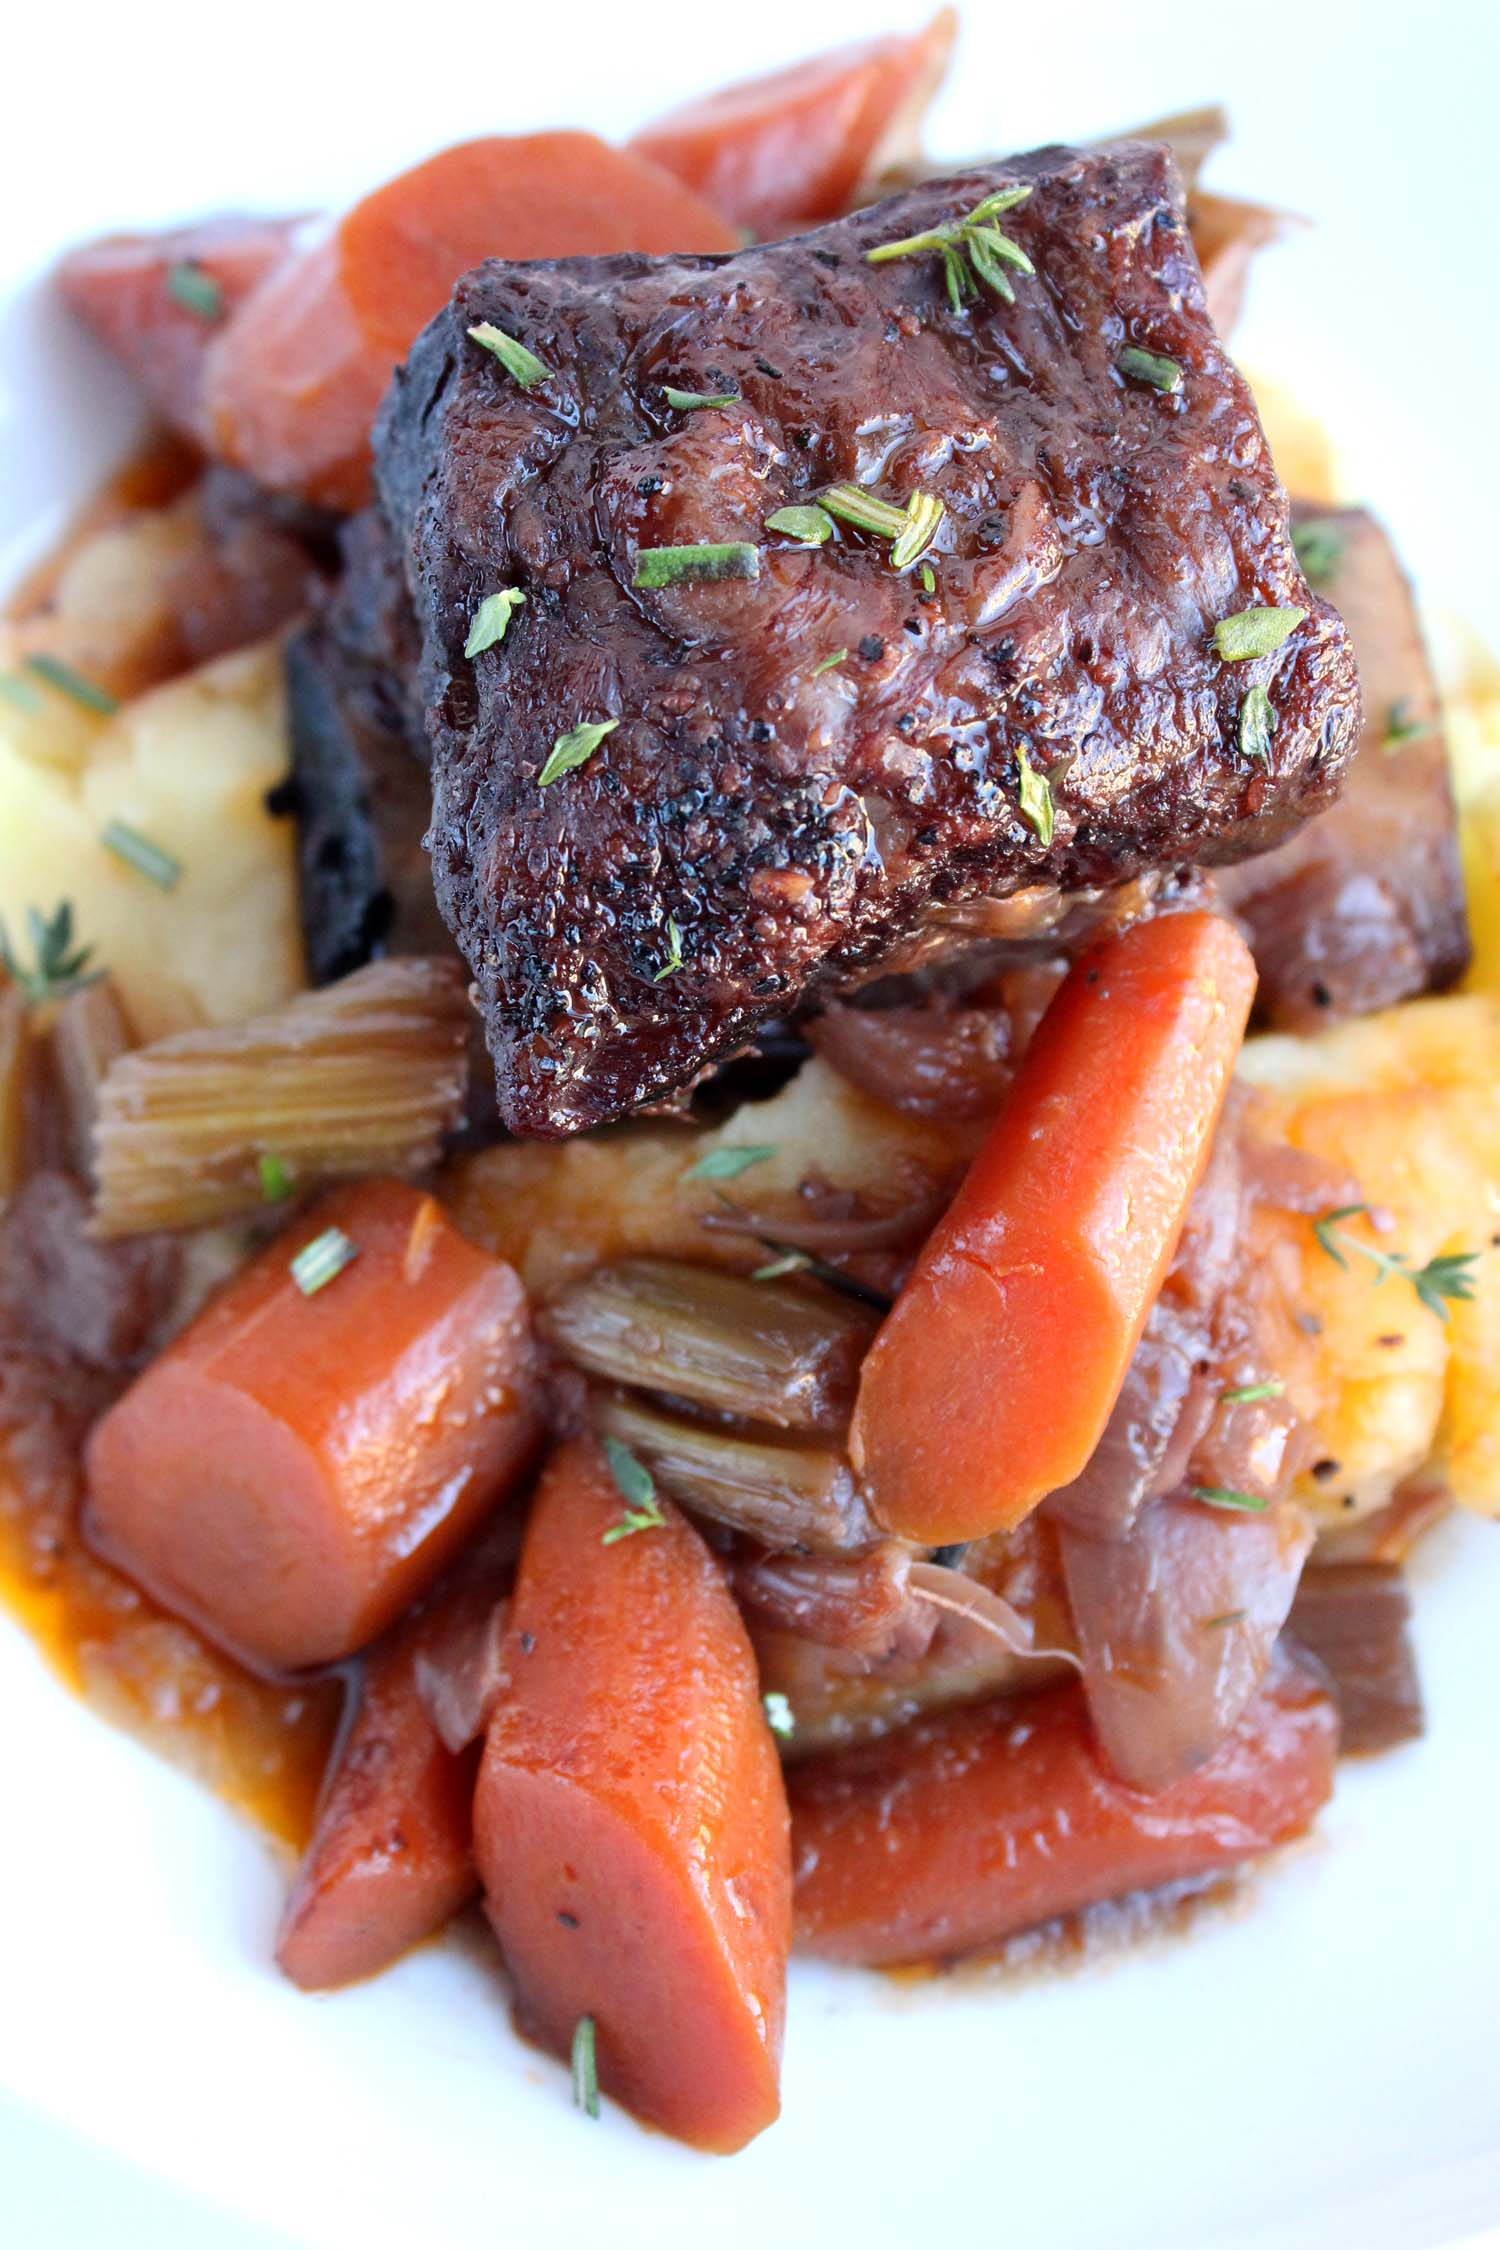 Braised Beef Short Ribs   | Image:   Laura Messersmith